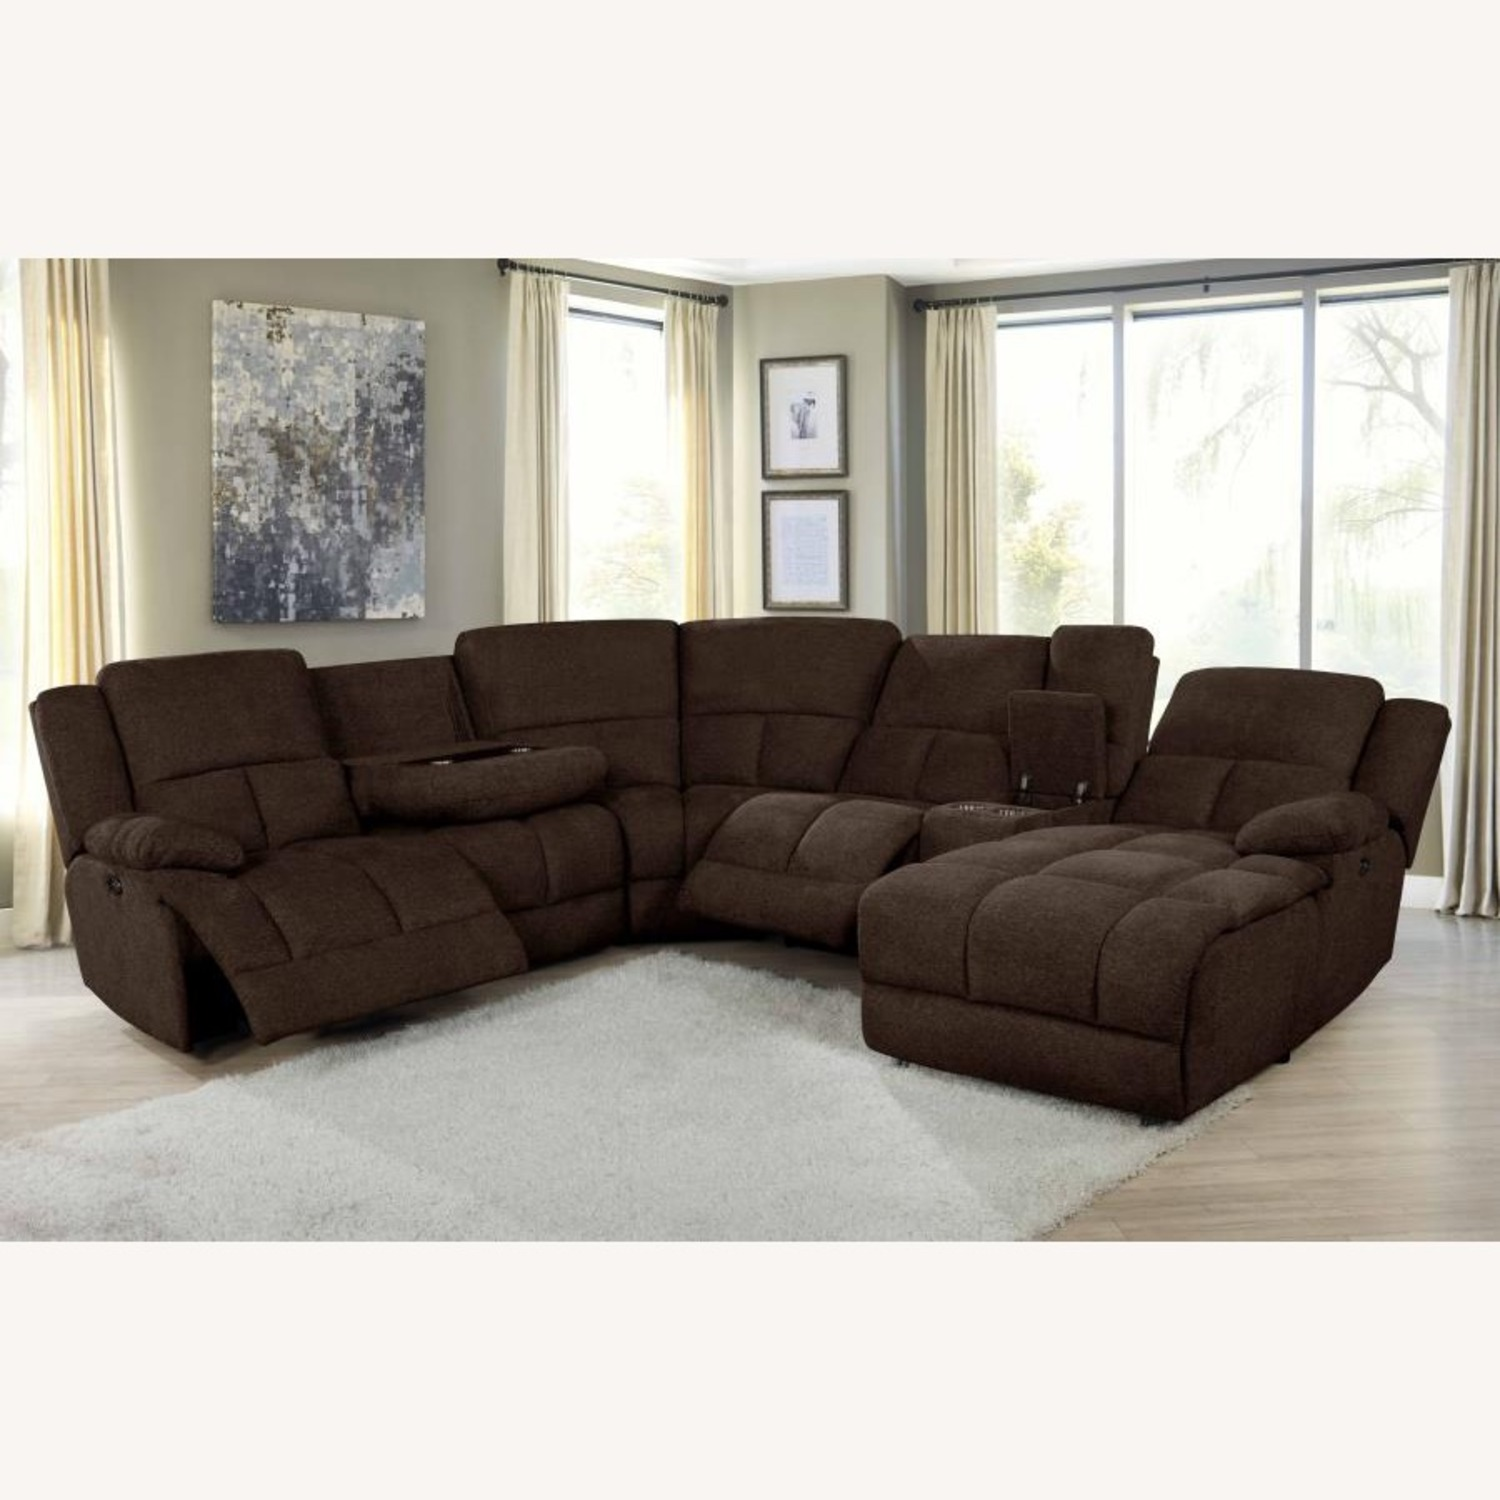 6Piece Power Sectional In Brown Performance Fabric - image-13